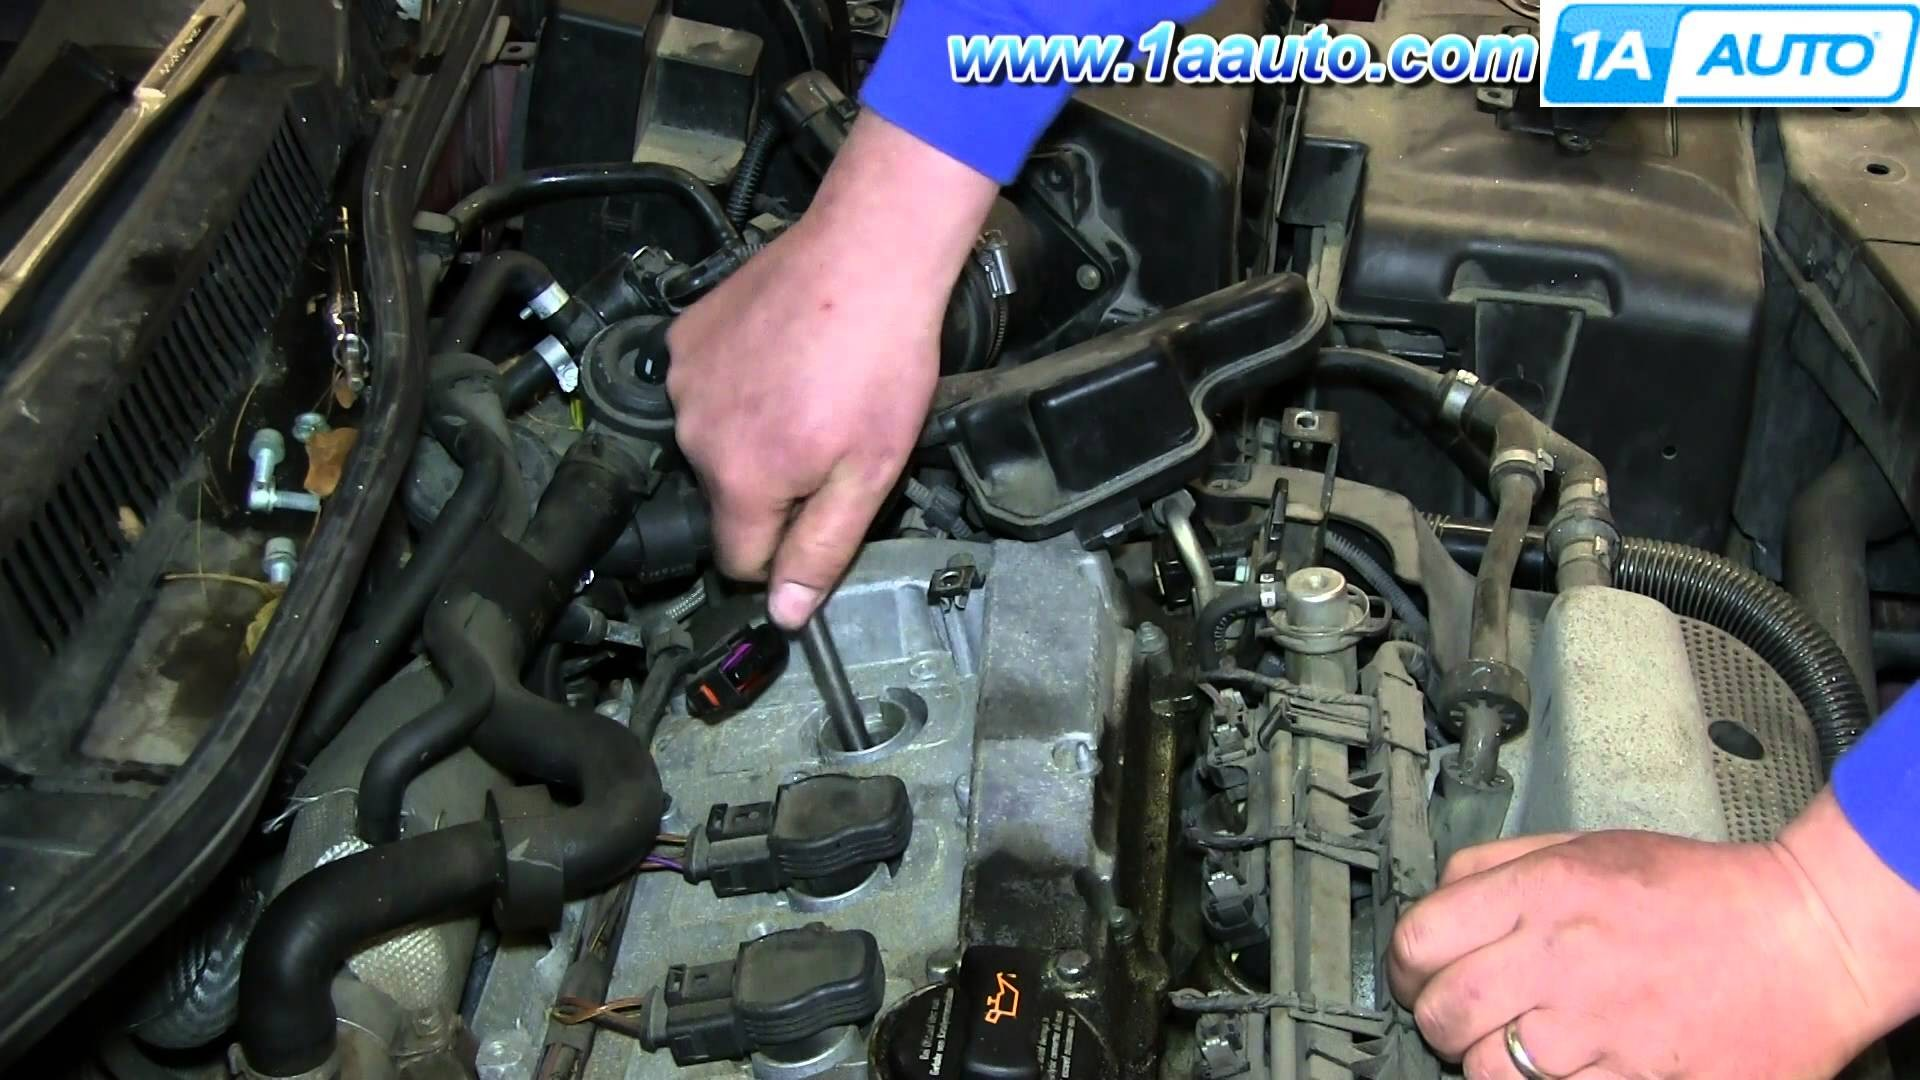 1999 Vw Passat Engine Diagram How to Install Replace Change Spark Plugs Vw Volkswagen 1 8t Turbo Of 1999 Vw Passat Engine Diagram